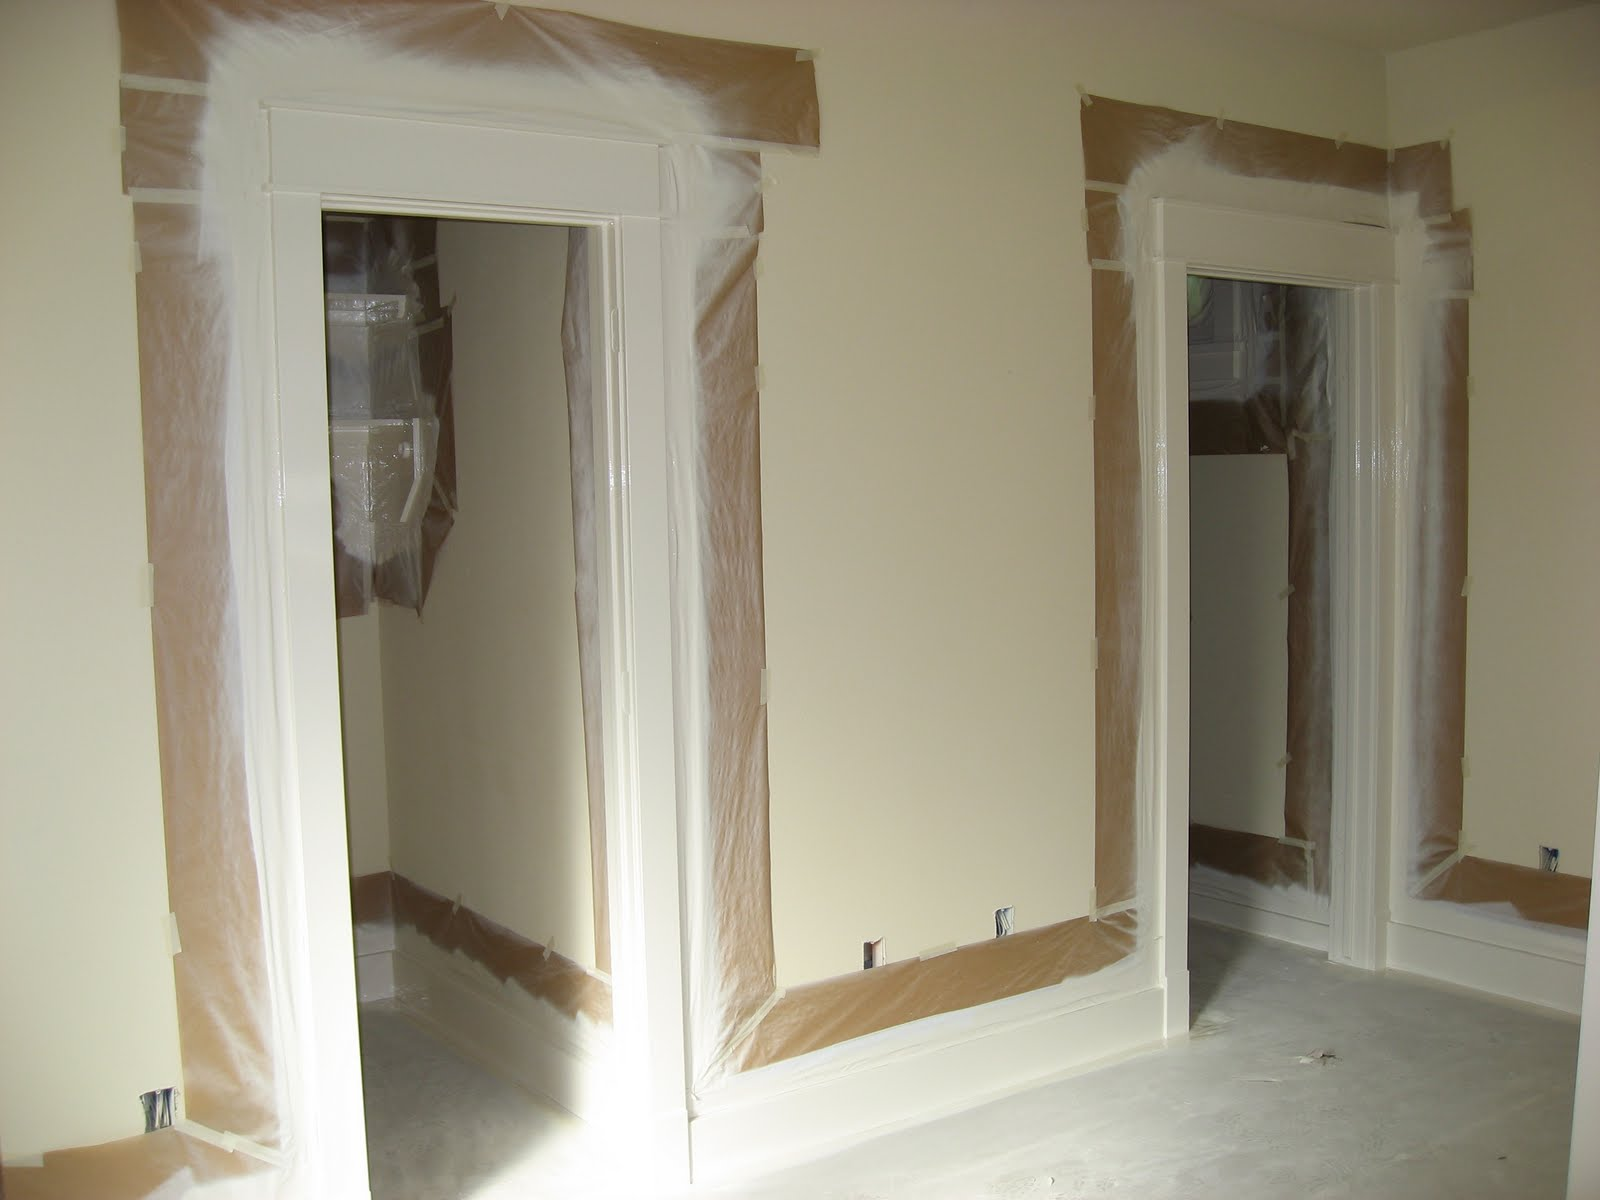 Green house good life finally interior paint - Painting interior doors and trim ...